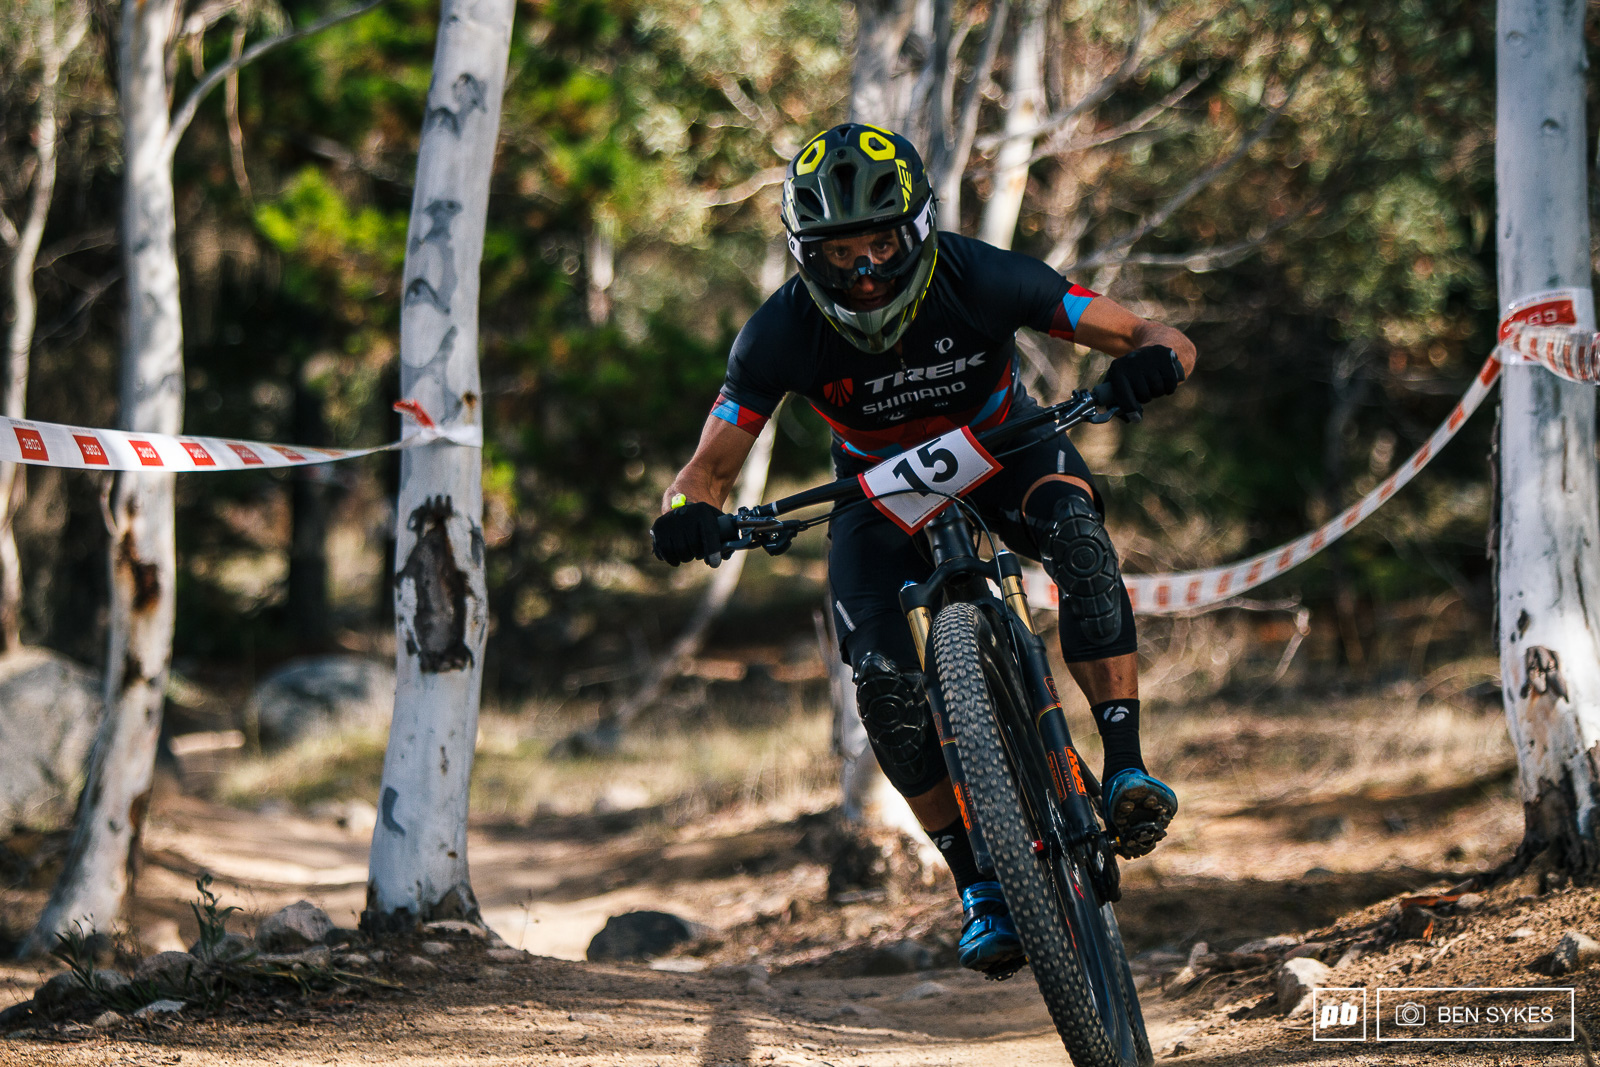 Dylan Cooper having a good day on the bike to take second.